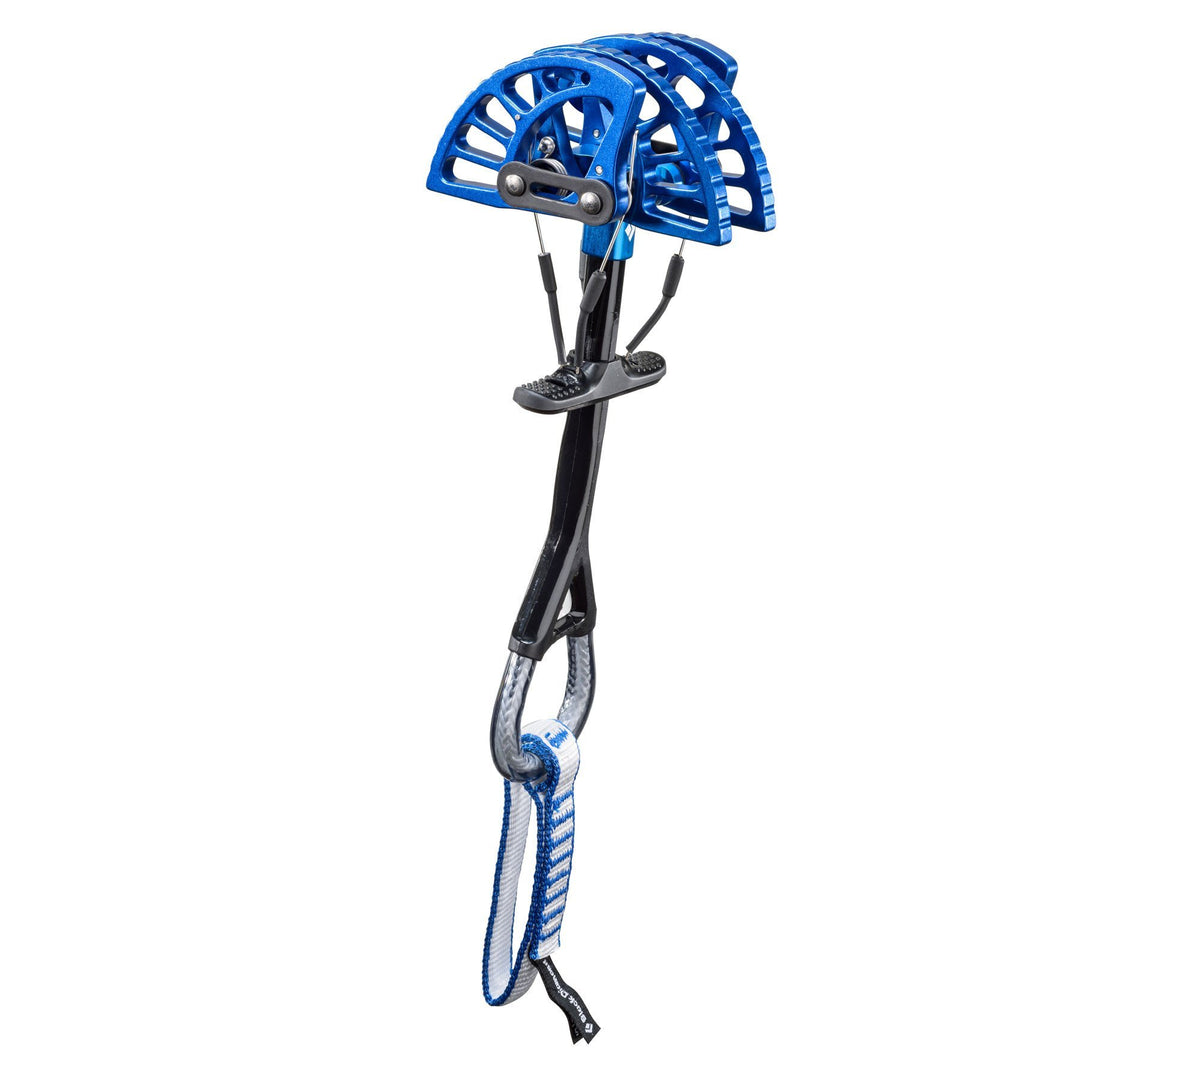 Black Diamond Camalot Ultralight climbing cam, Size 3 in blue colour